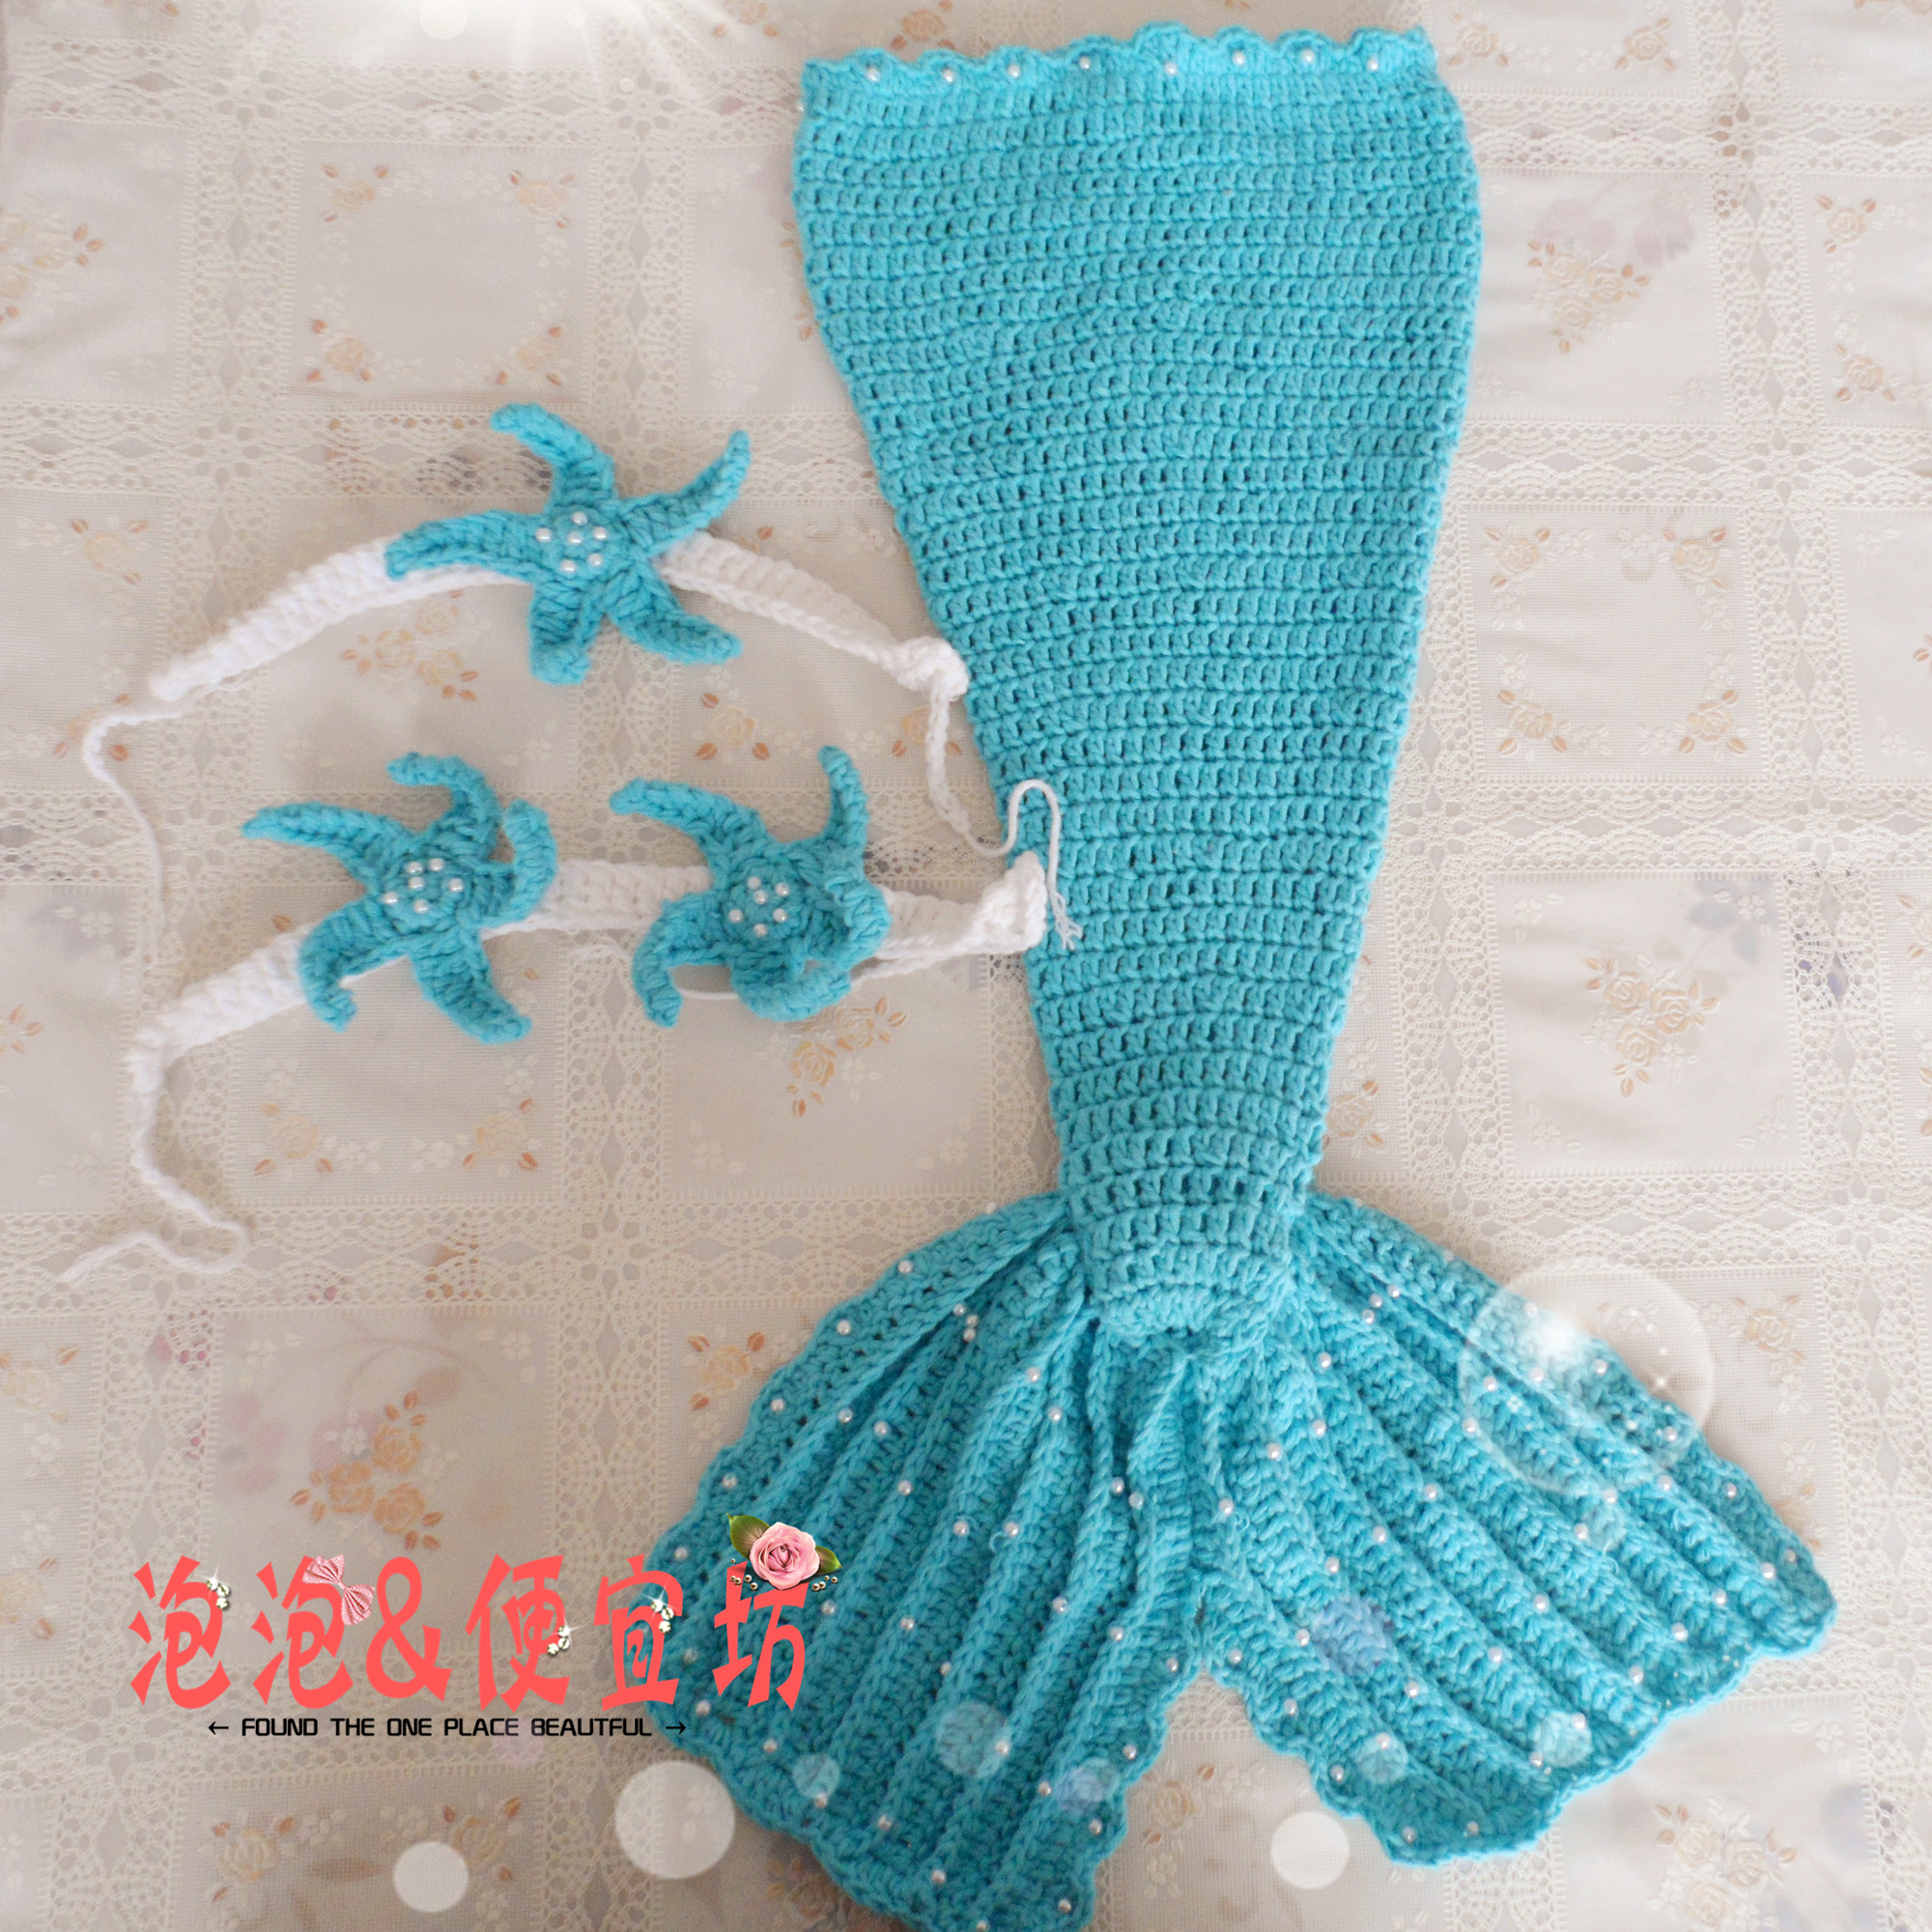 Crochet Patterns Mermaid : crochet little mermaid tails for little girls make handmade, crochet ...